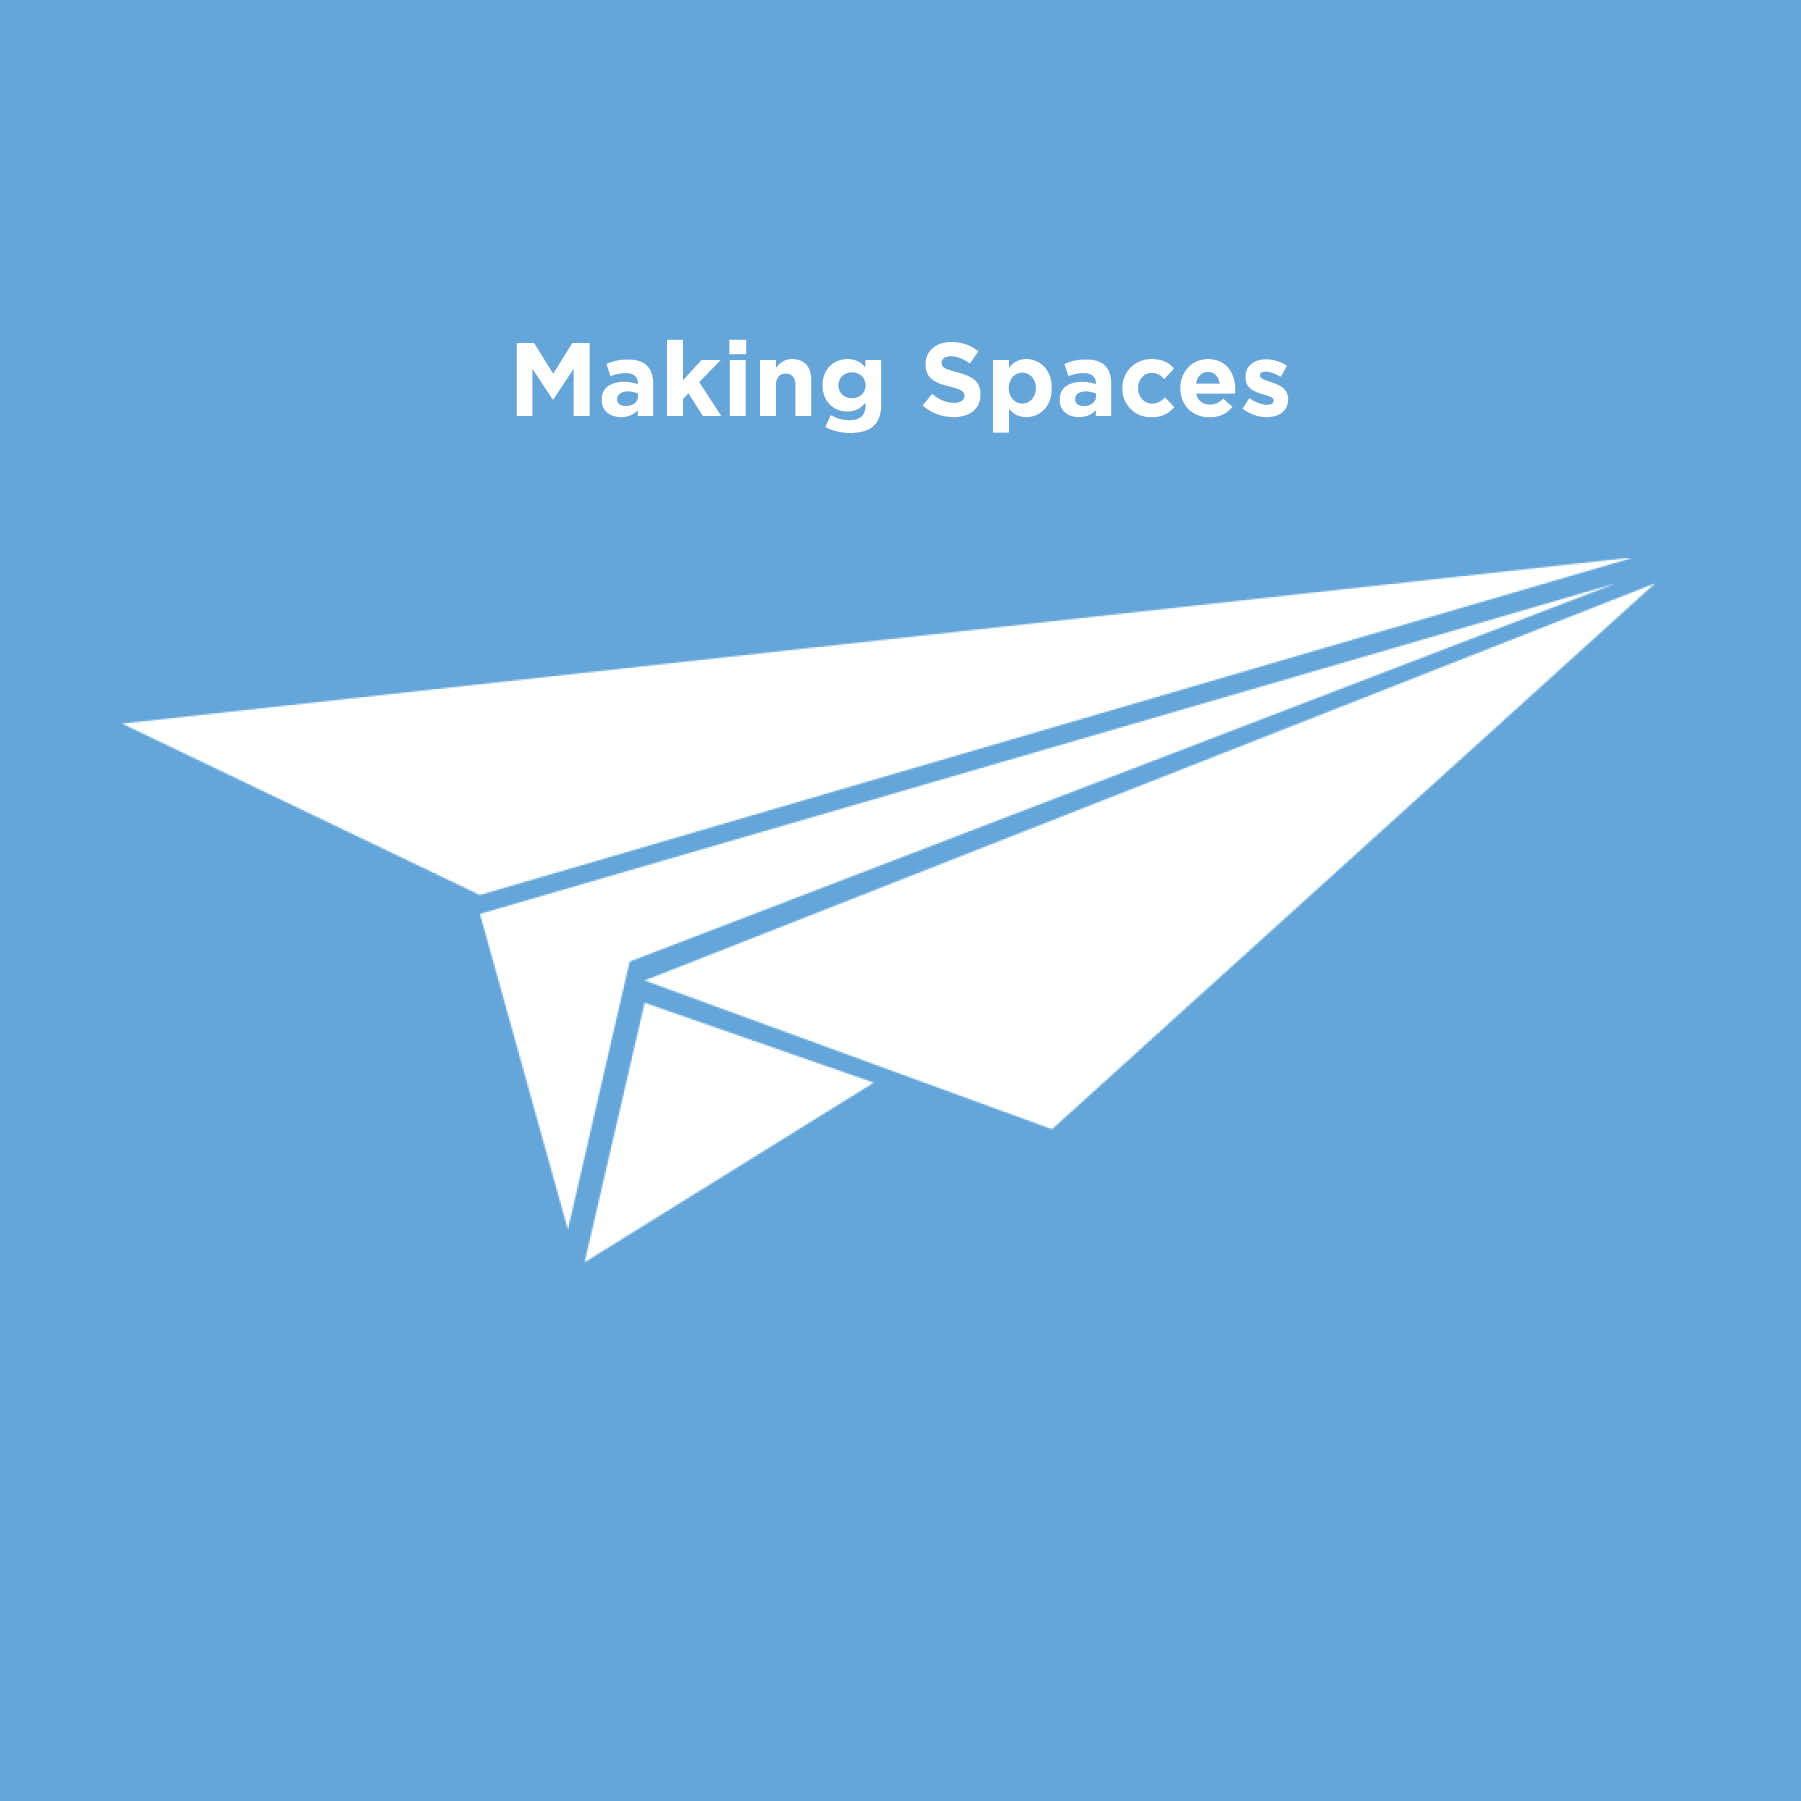 Researched and designed making spaces in a campus environment.